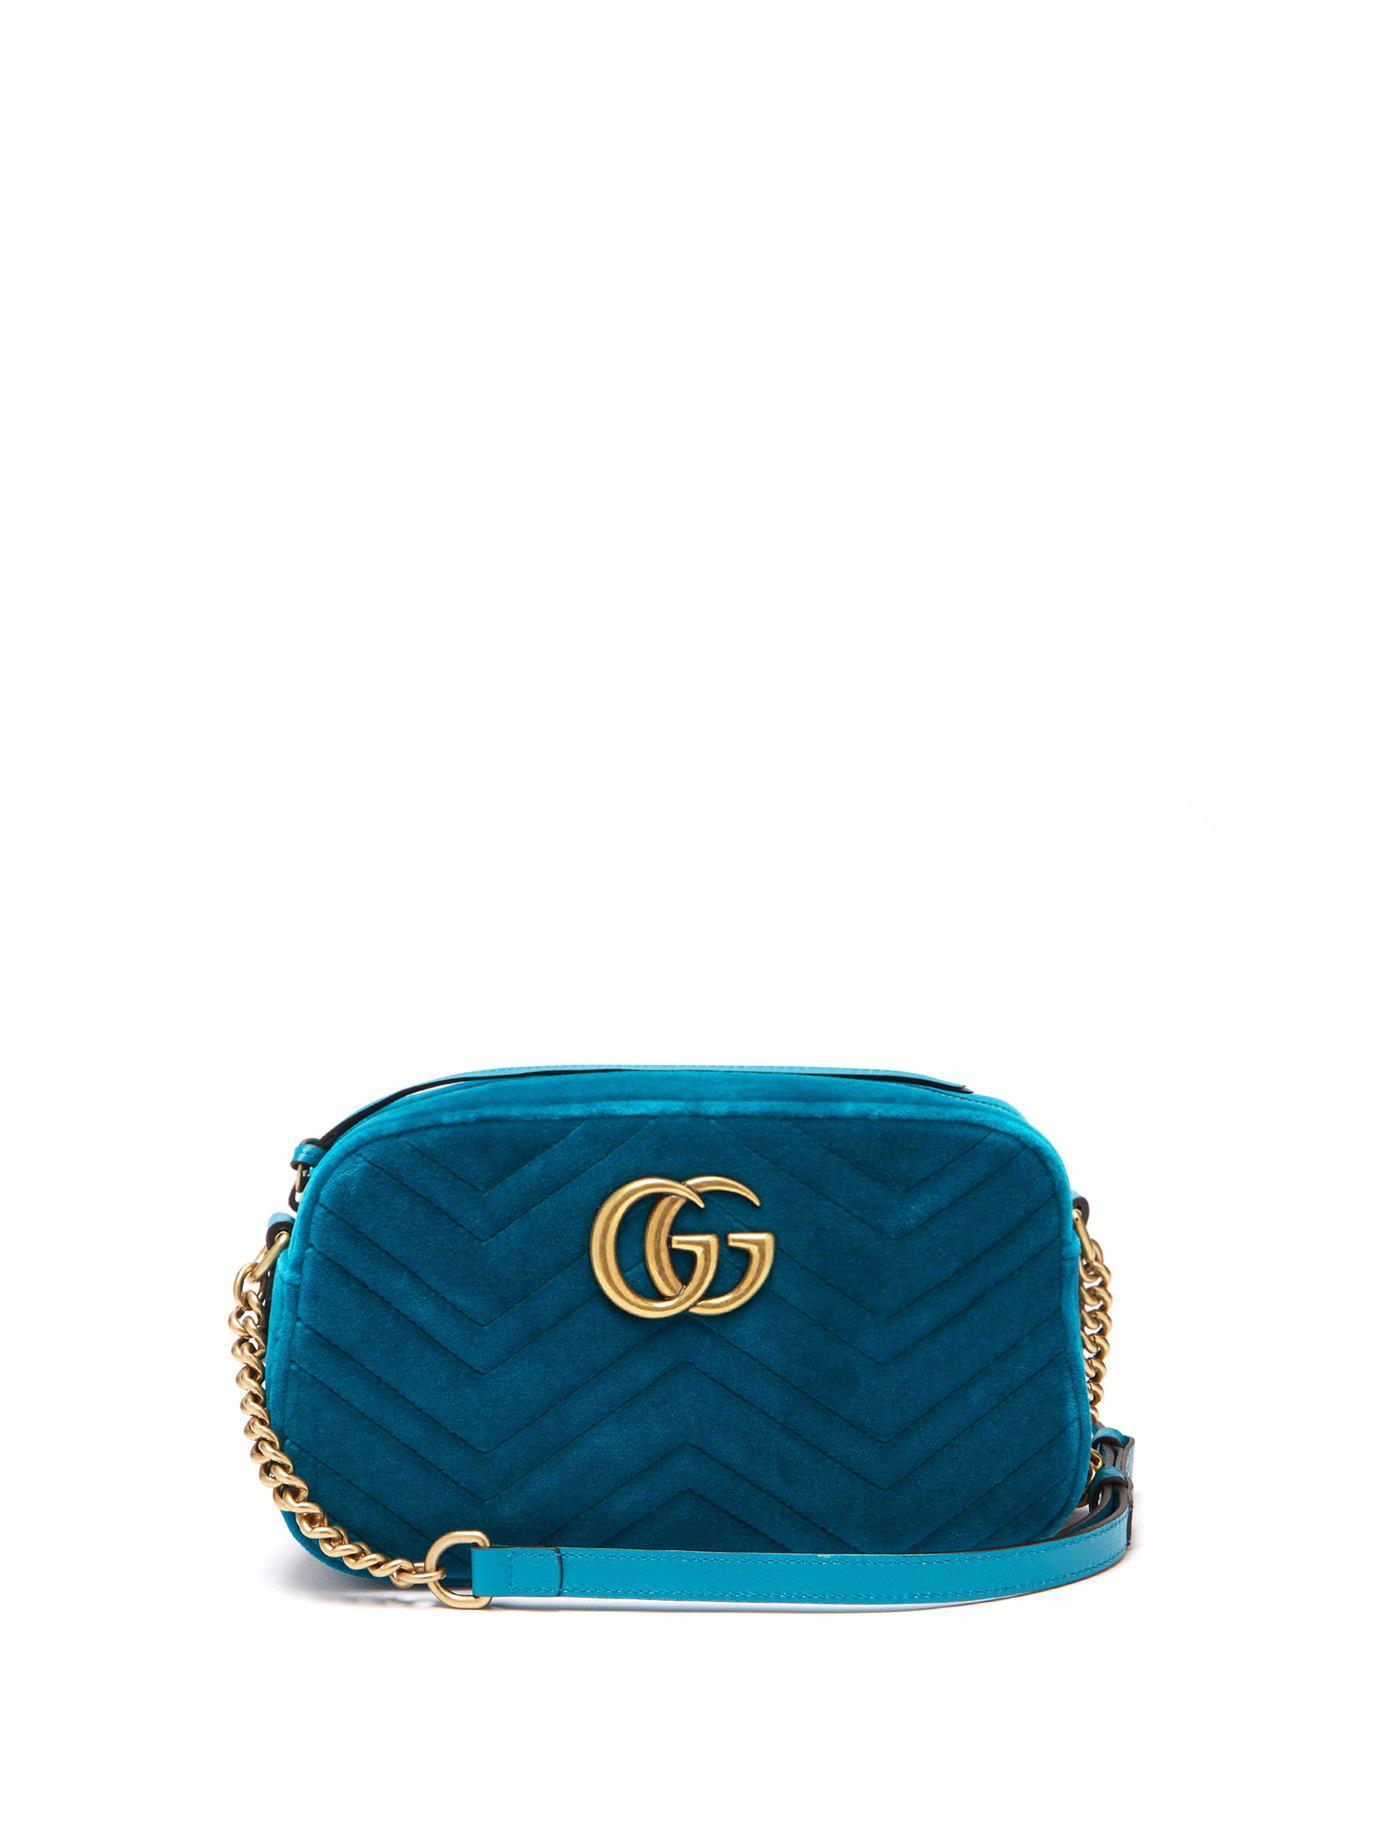 e070a2b8d67 Lyst - Gucci Gg Marmont Quilted Velvet Cross Body Bag in Green